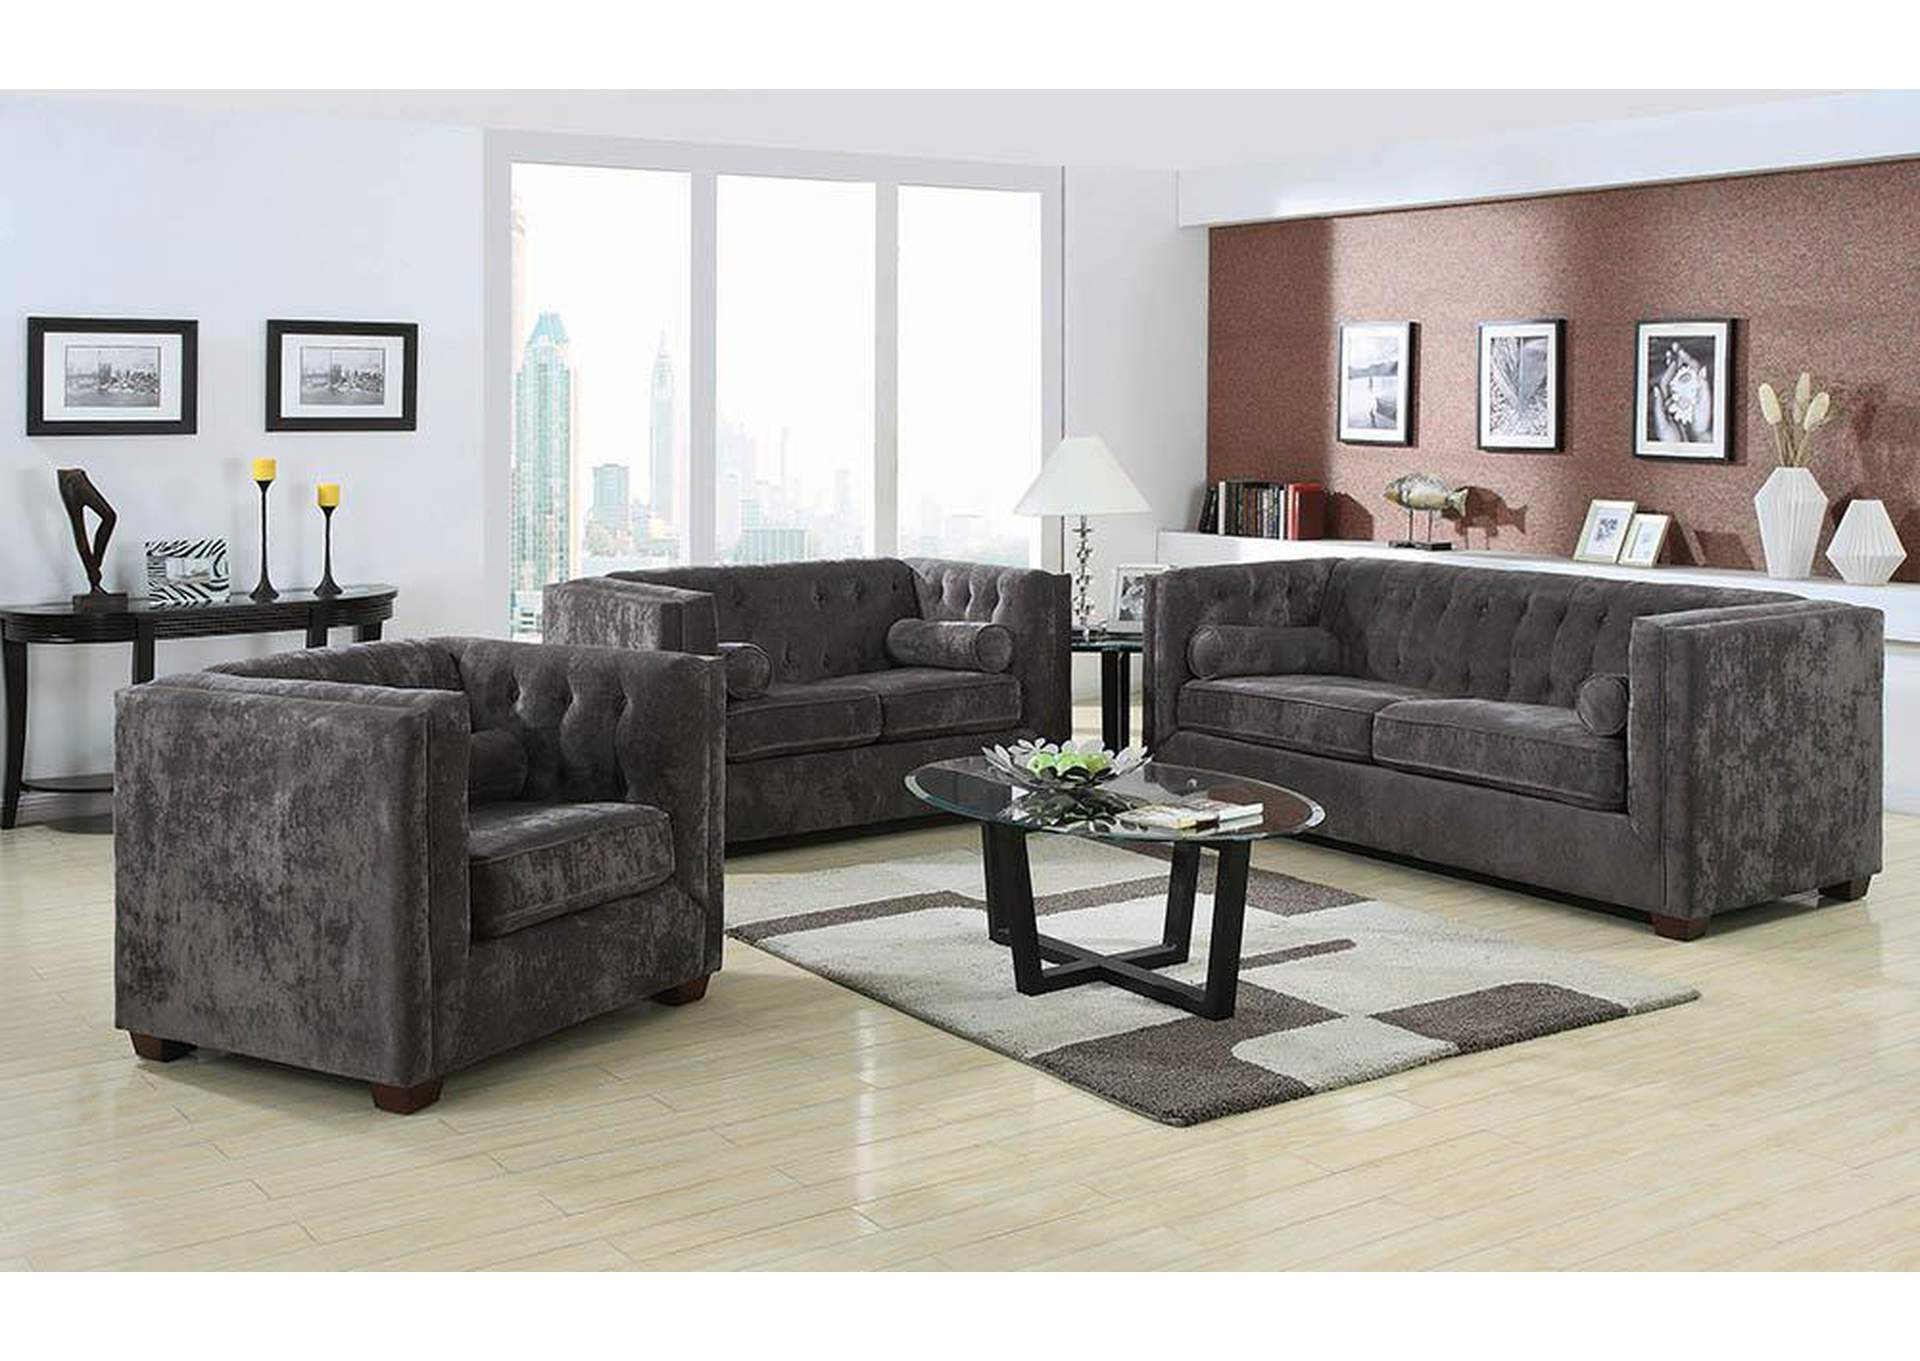 Actionwood Home Furniture Salt Lake City Ut Alexis Charcoal Sofa